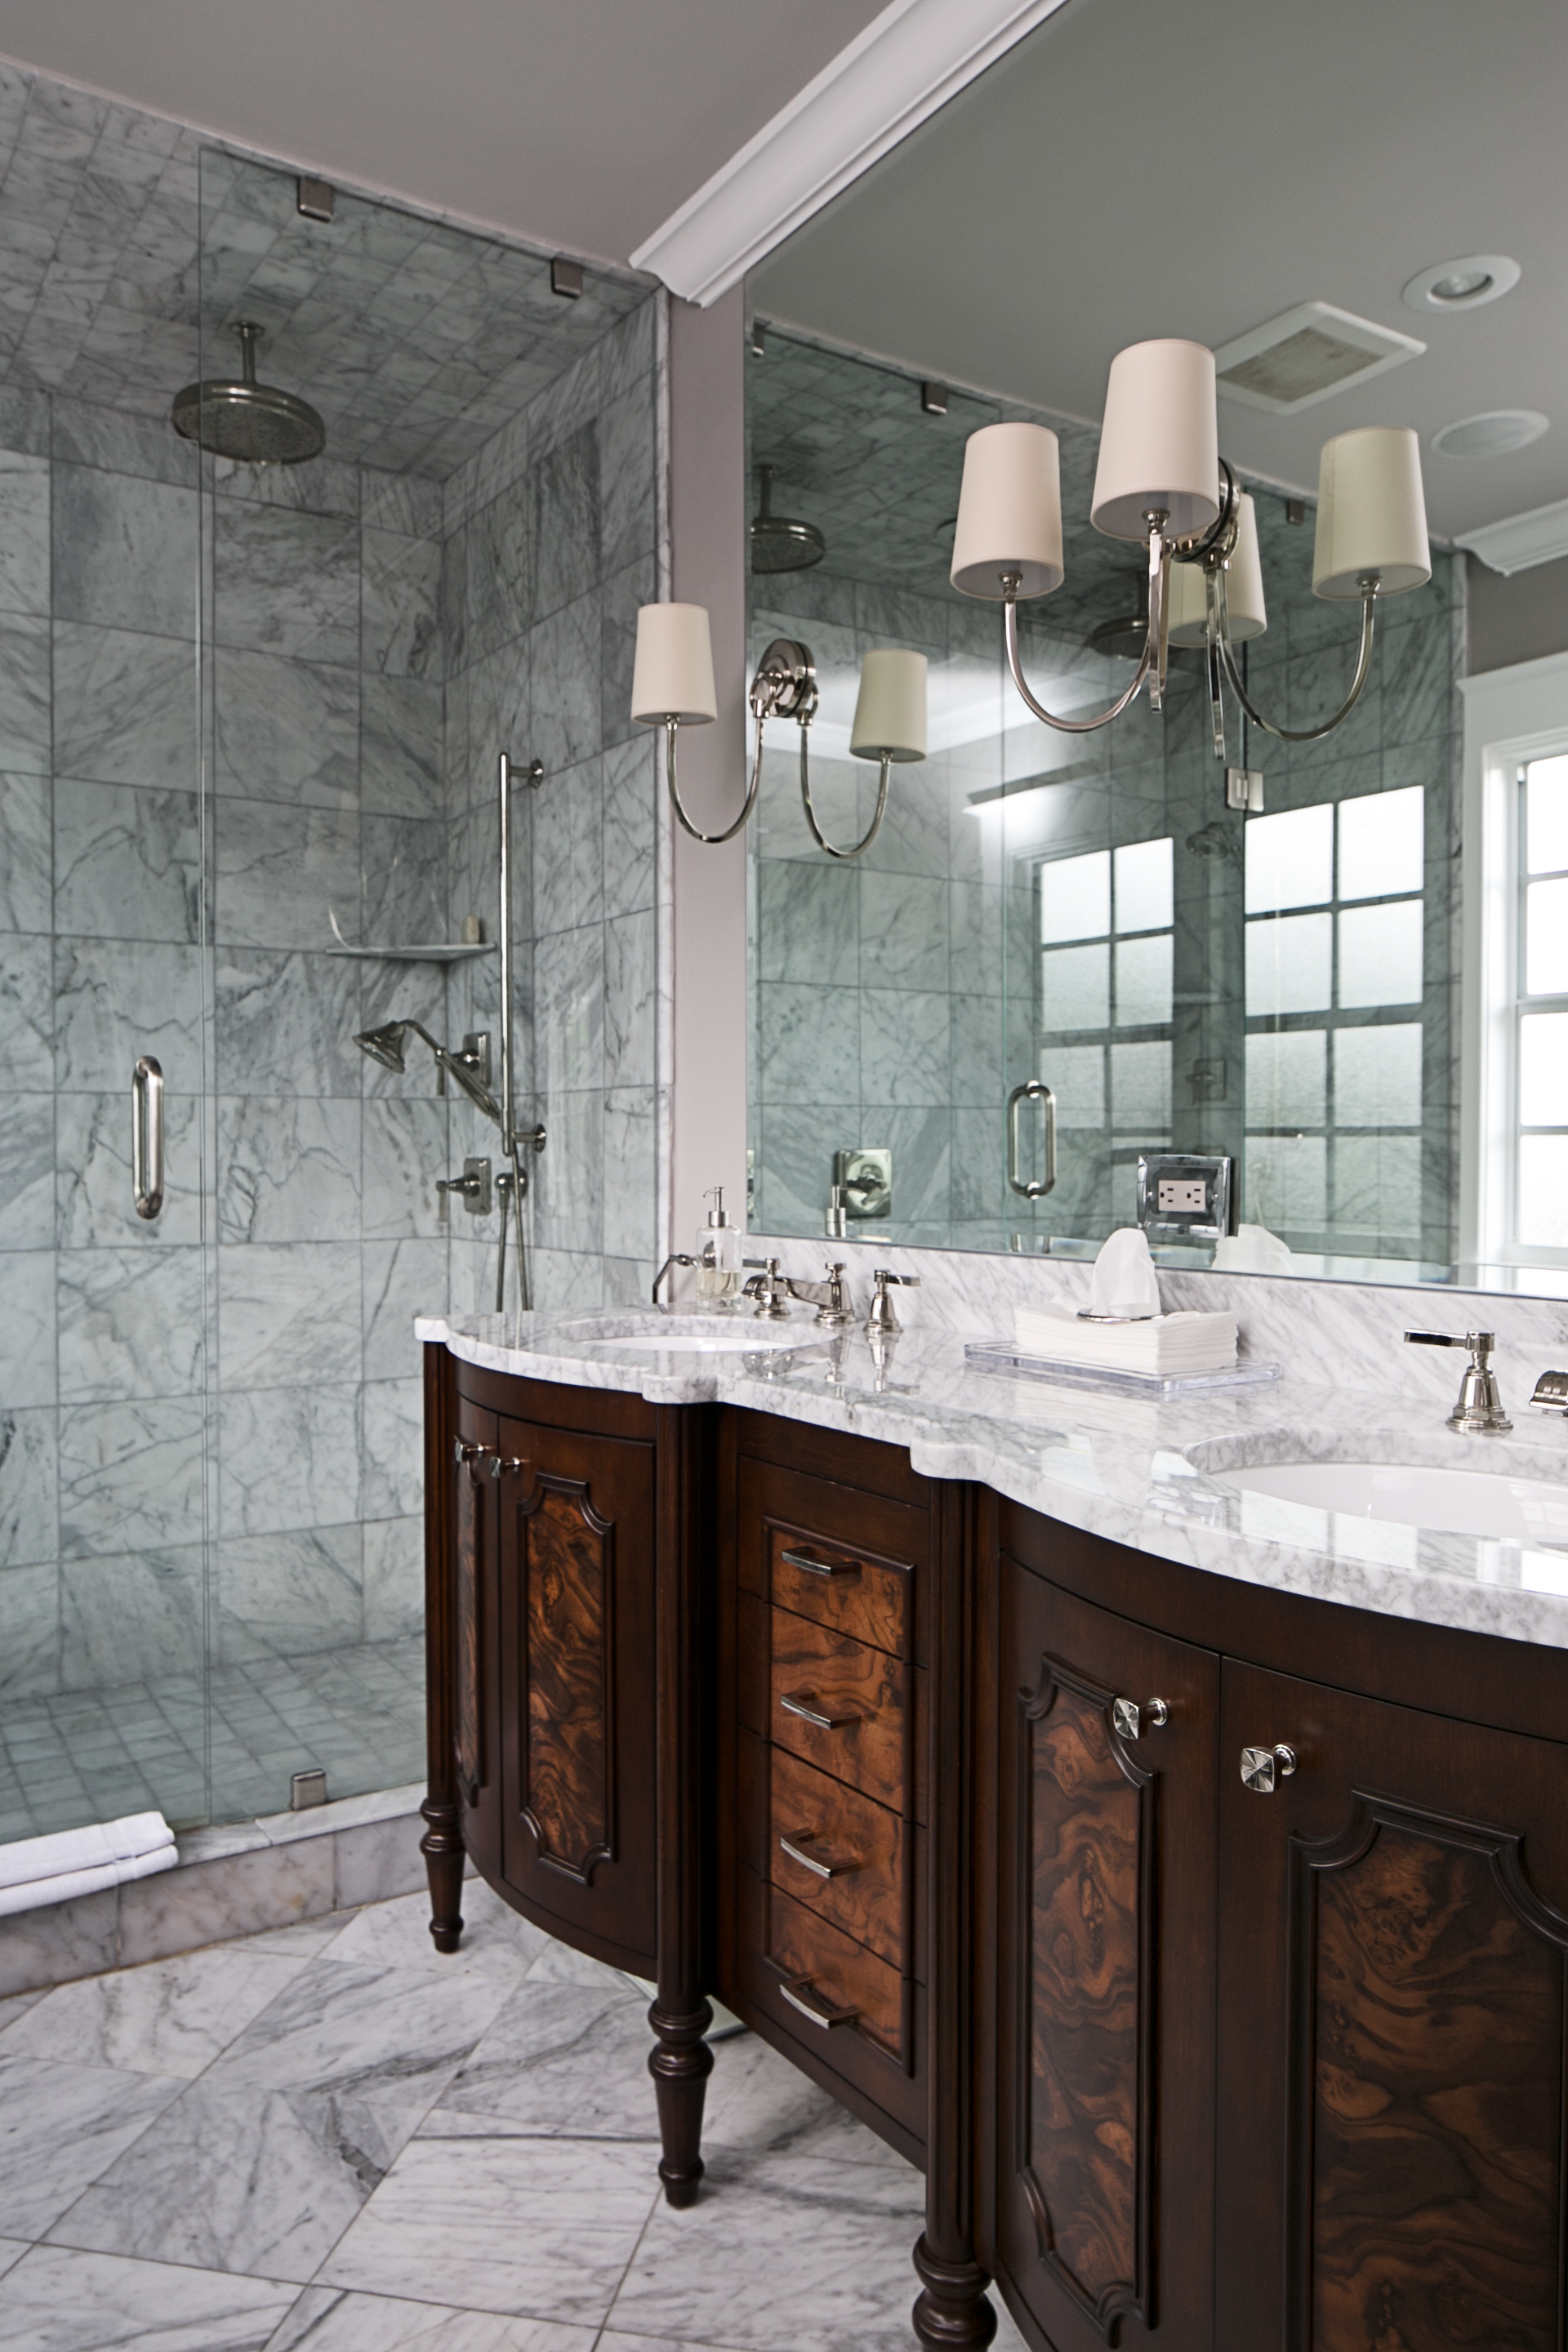 Traditional marble master bathroom by Lisa Gilmore Design | Image: Native House Photography